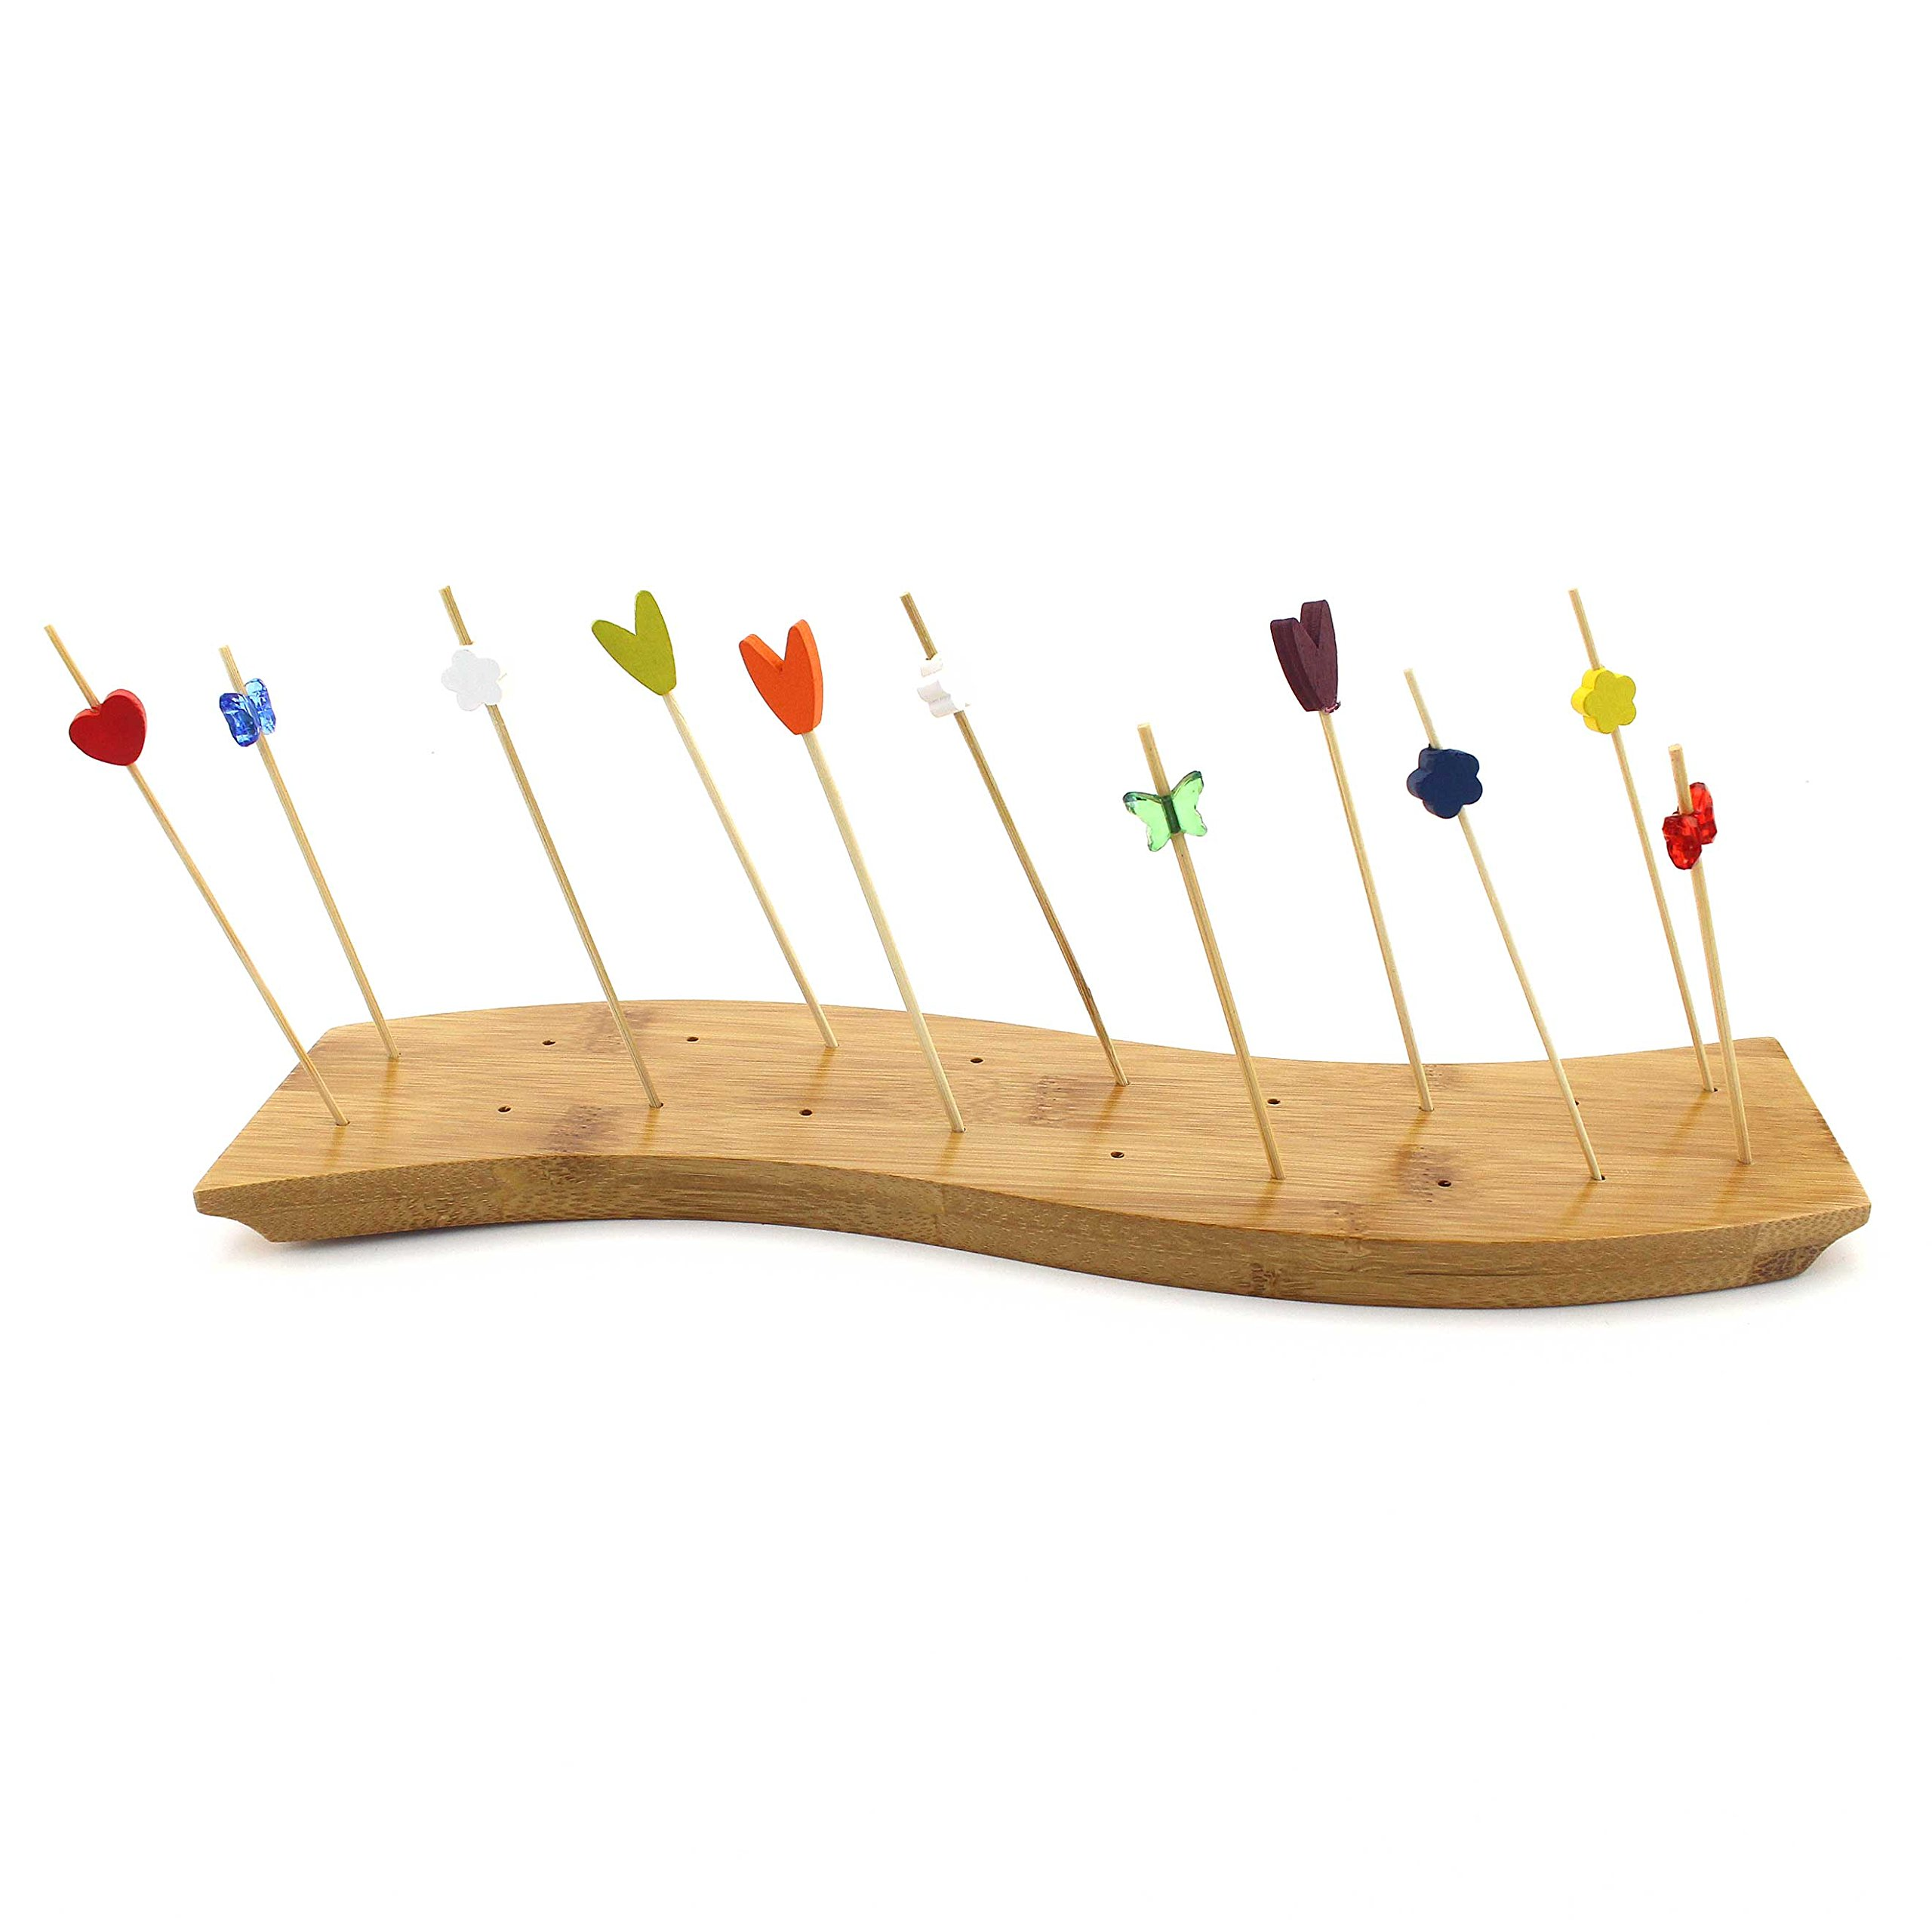 BambooMN 12'' x 3'' Bamboo Skewer Holder Food Display S-Wave Bamboo Skewers Stand w/ 20 Holes, Natural Color - 10 Pieces